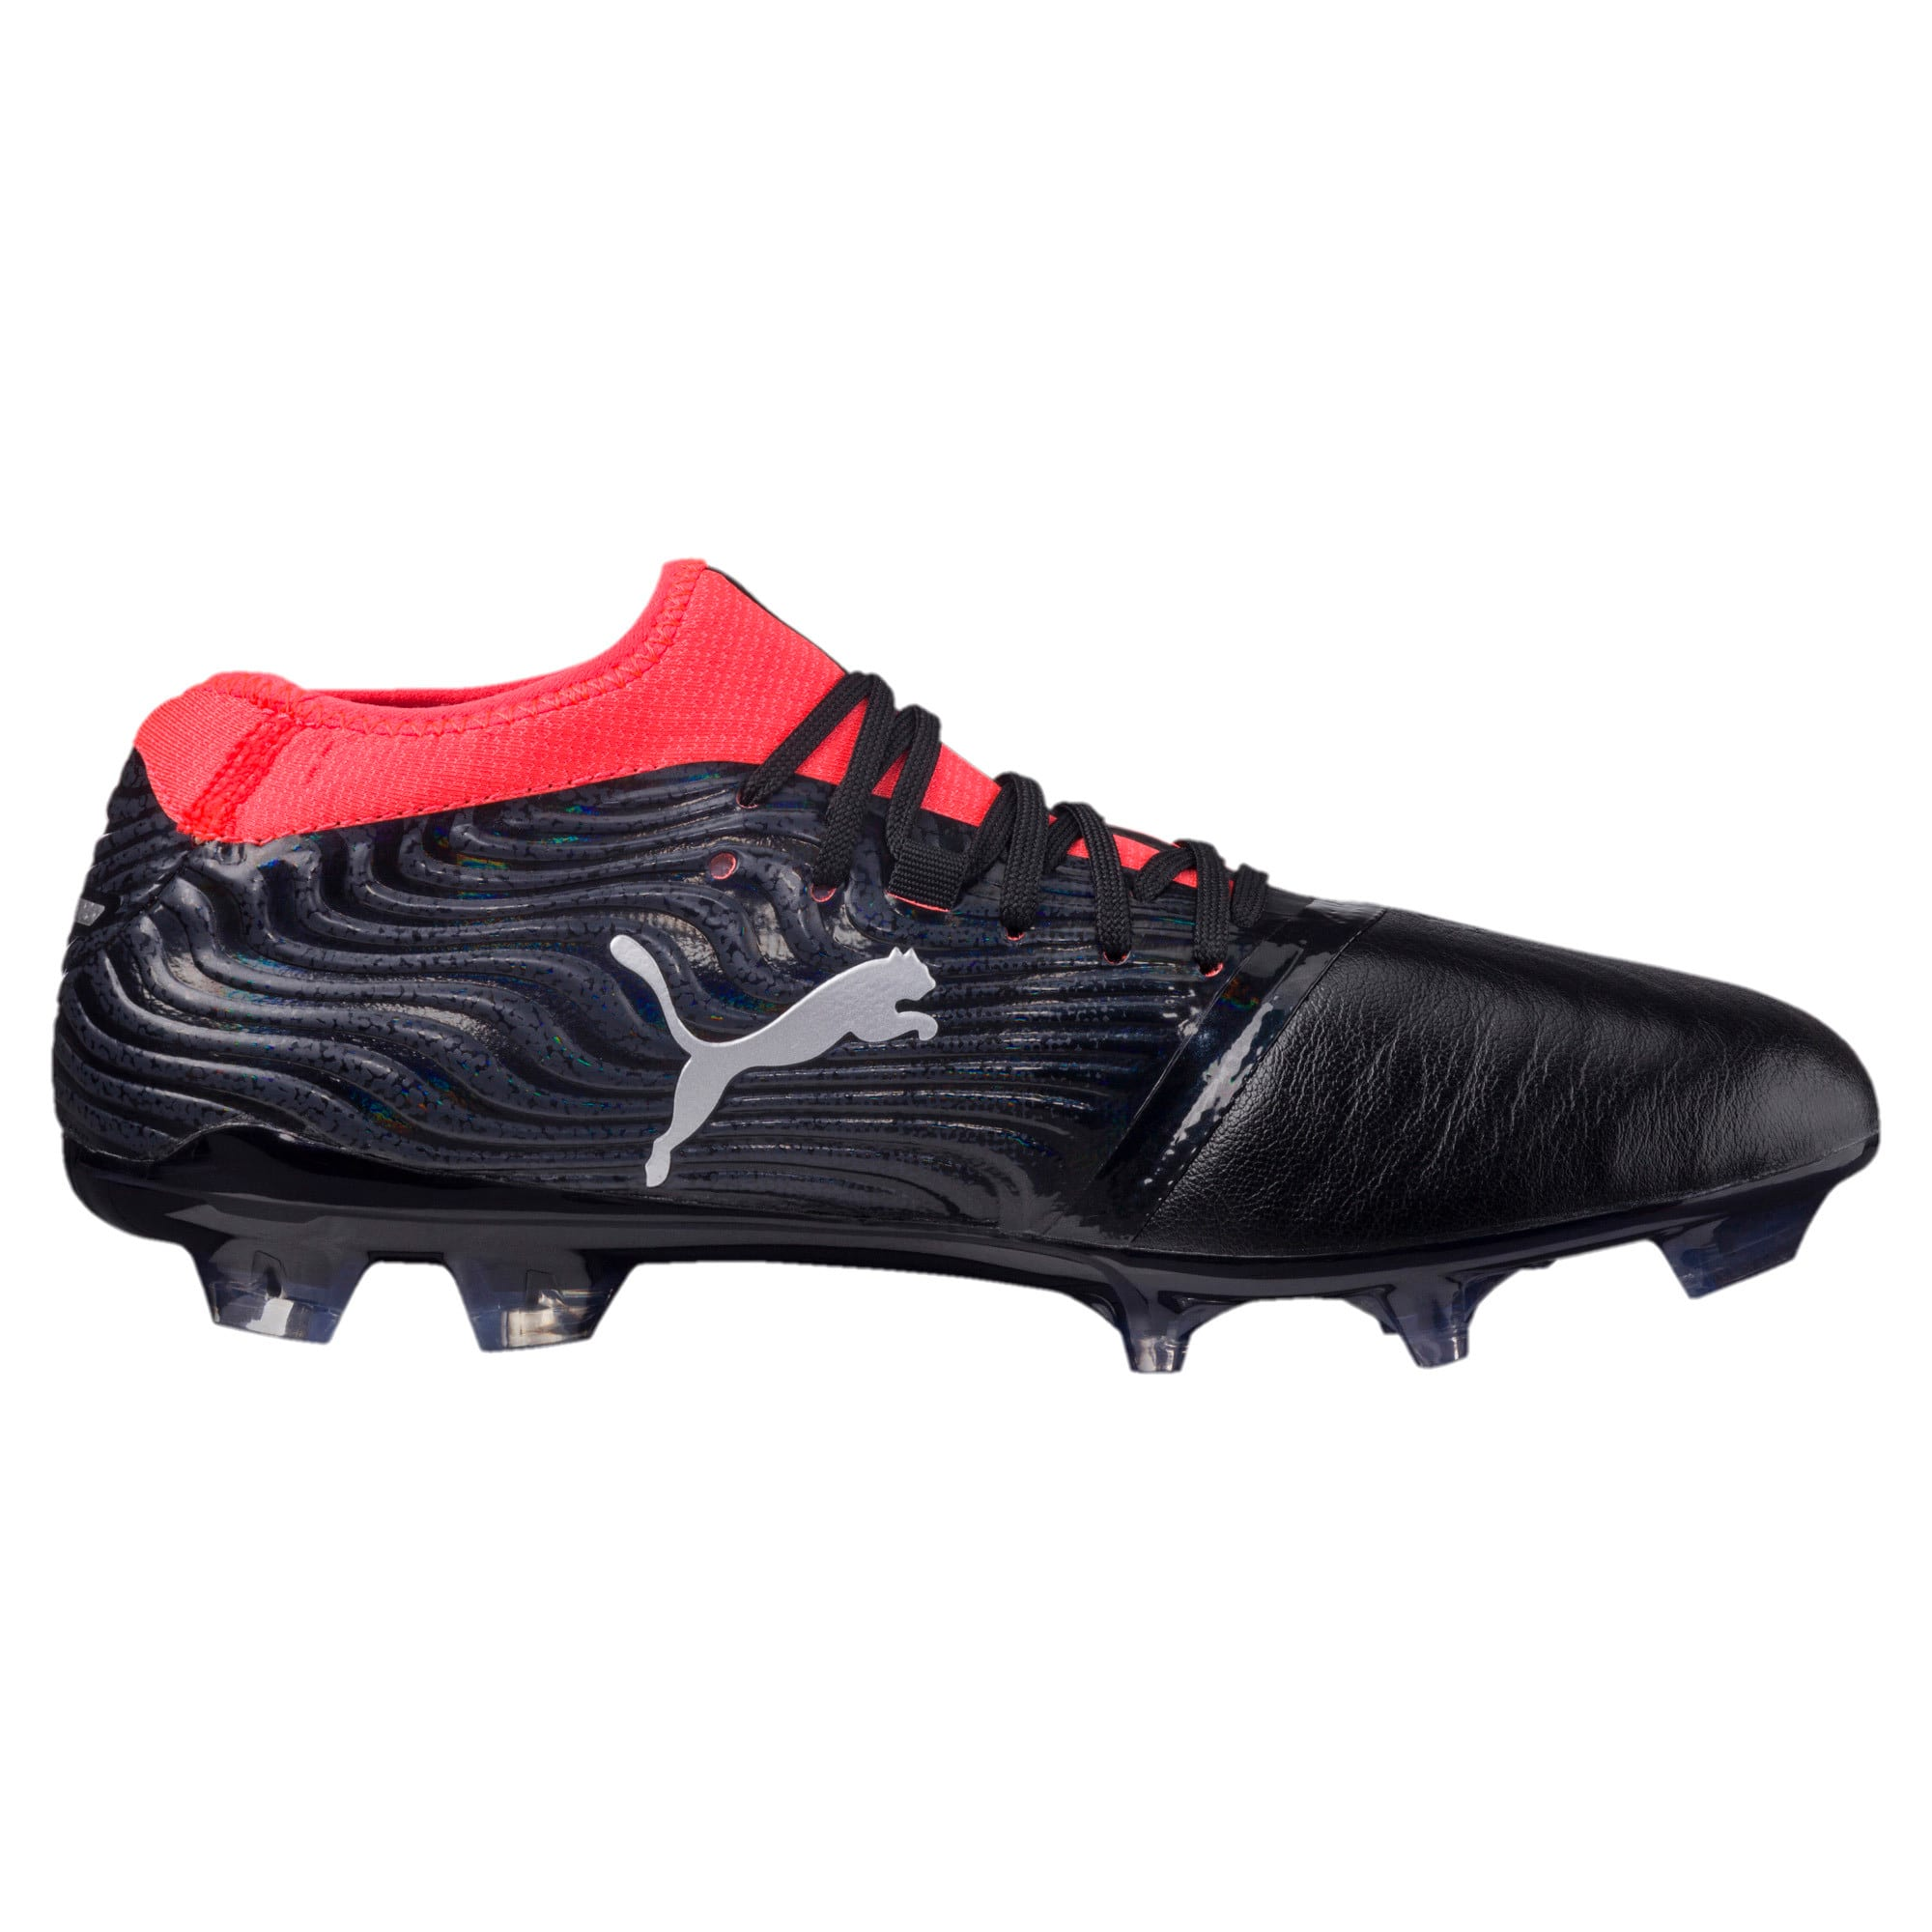 Thumbnail 3 of ONE 18.2 FG Men's Football Boots, Black-Silver-Red, medium-IND